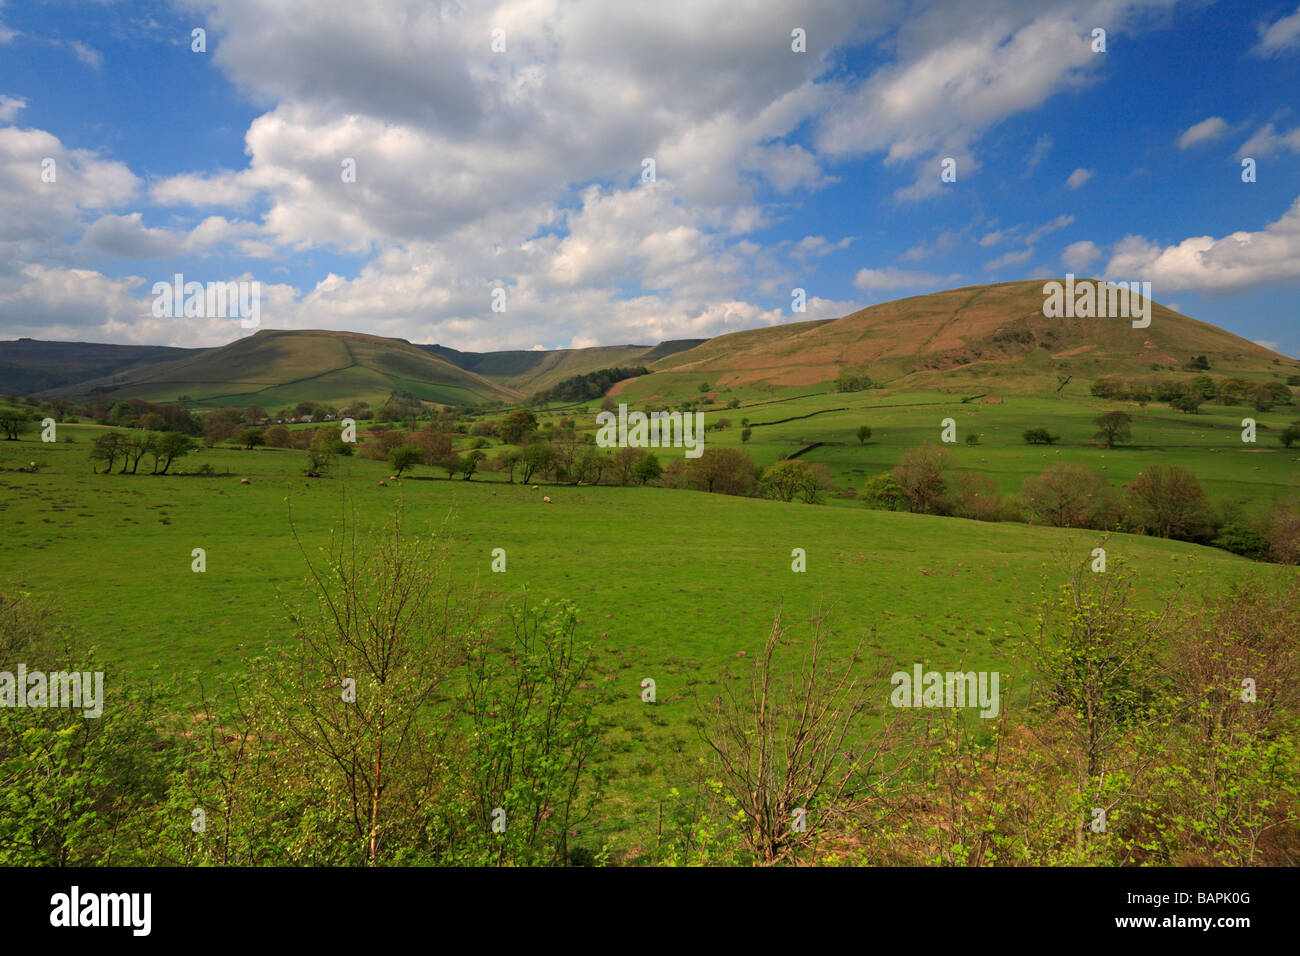 Kinder Scout from Edale on the Pennine Way, Derbyshire, Peak District National Park, England, UK. - Stock Image